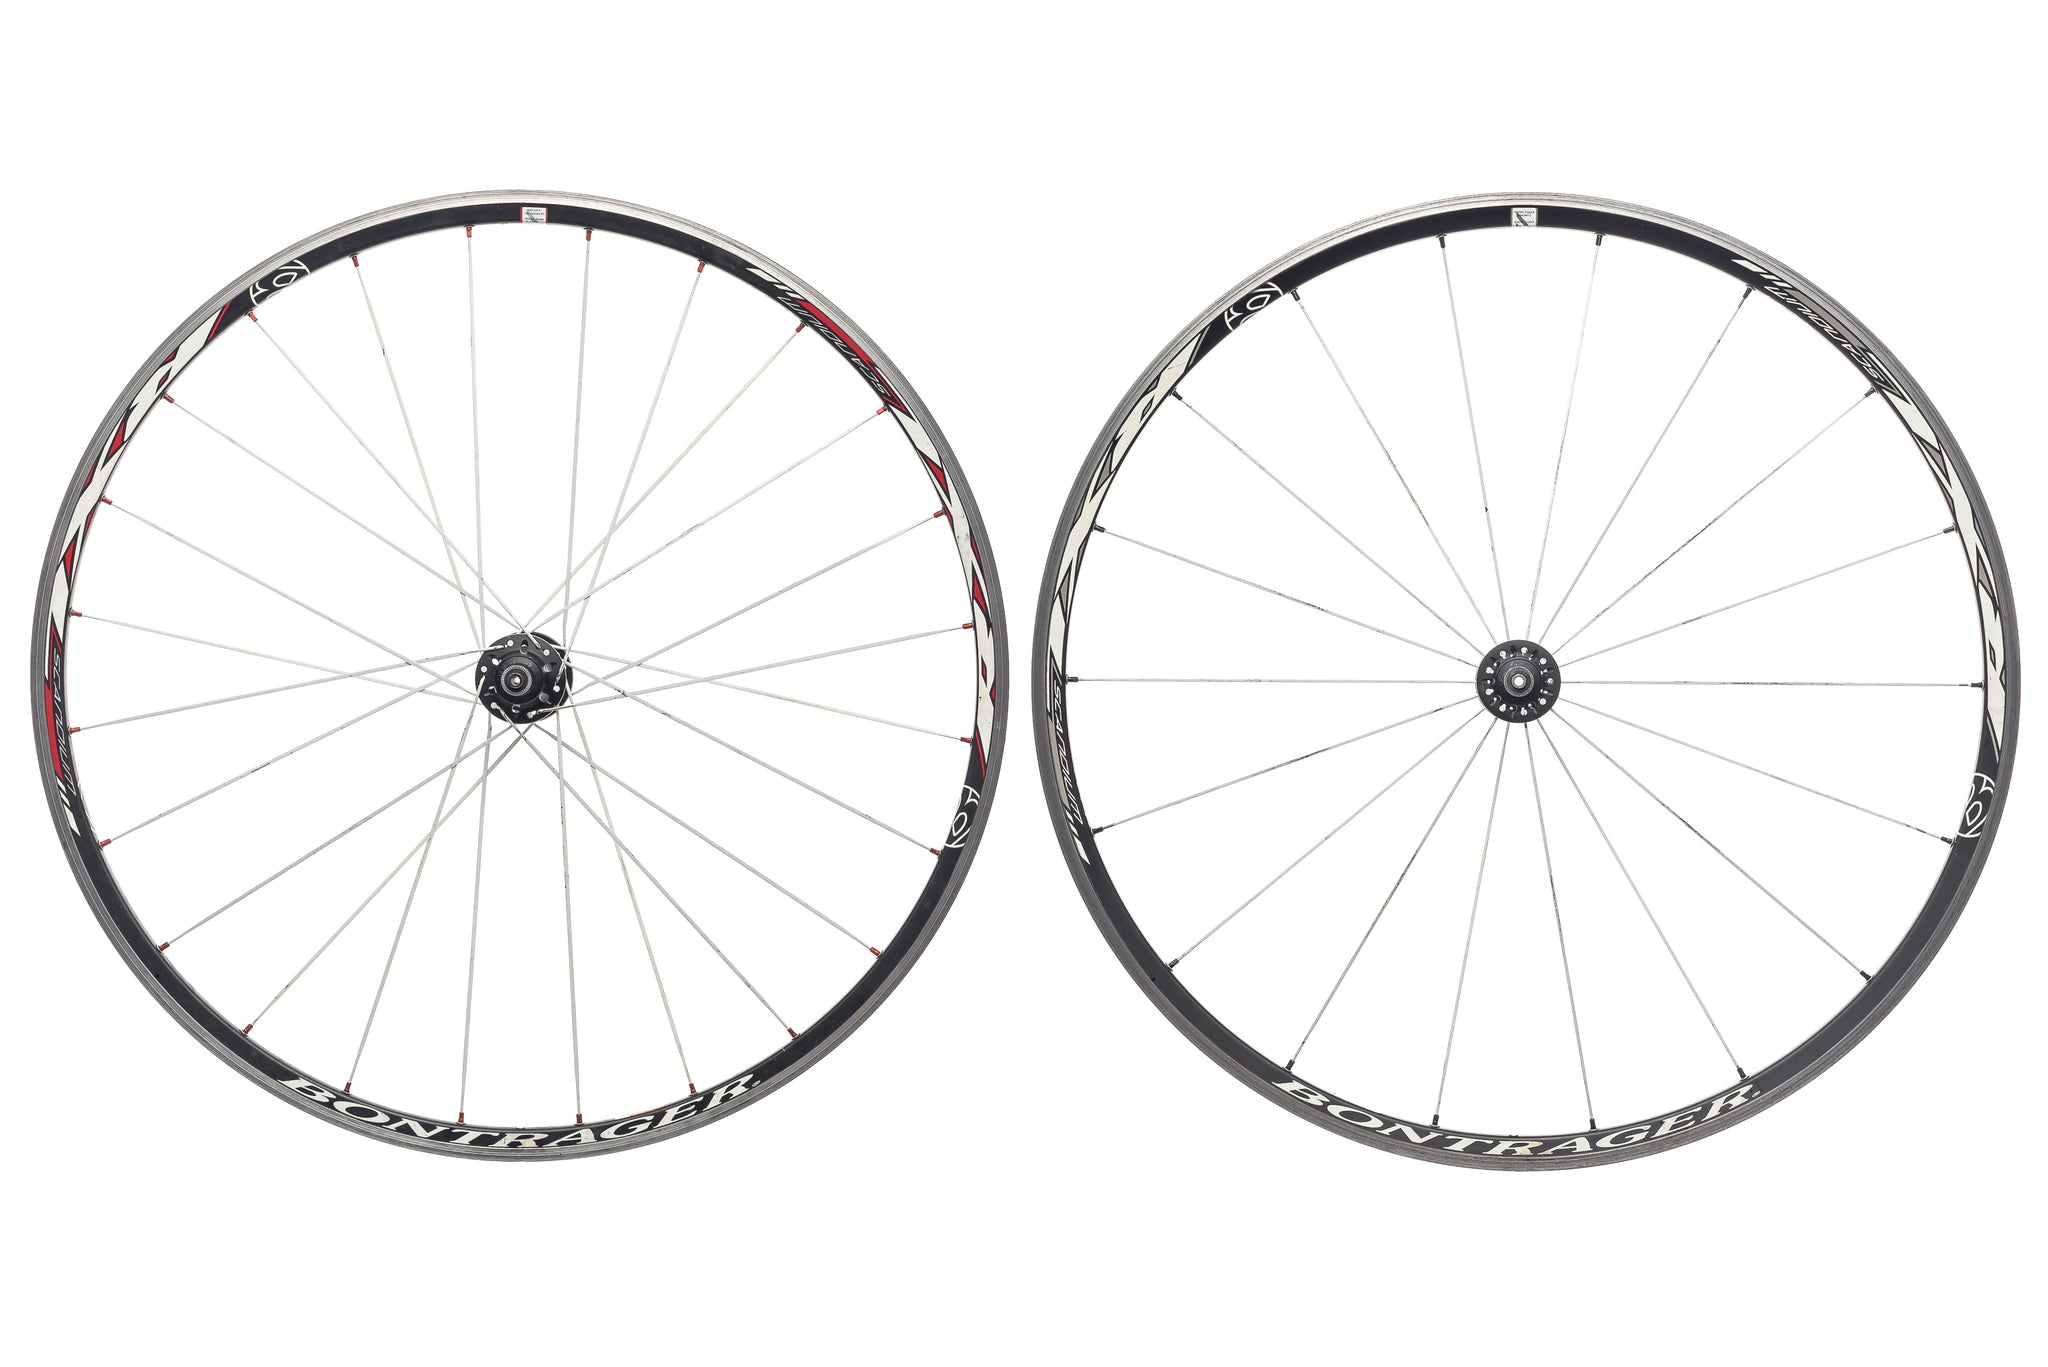 Bontrager RXL Scandium 700c Wheel Set